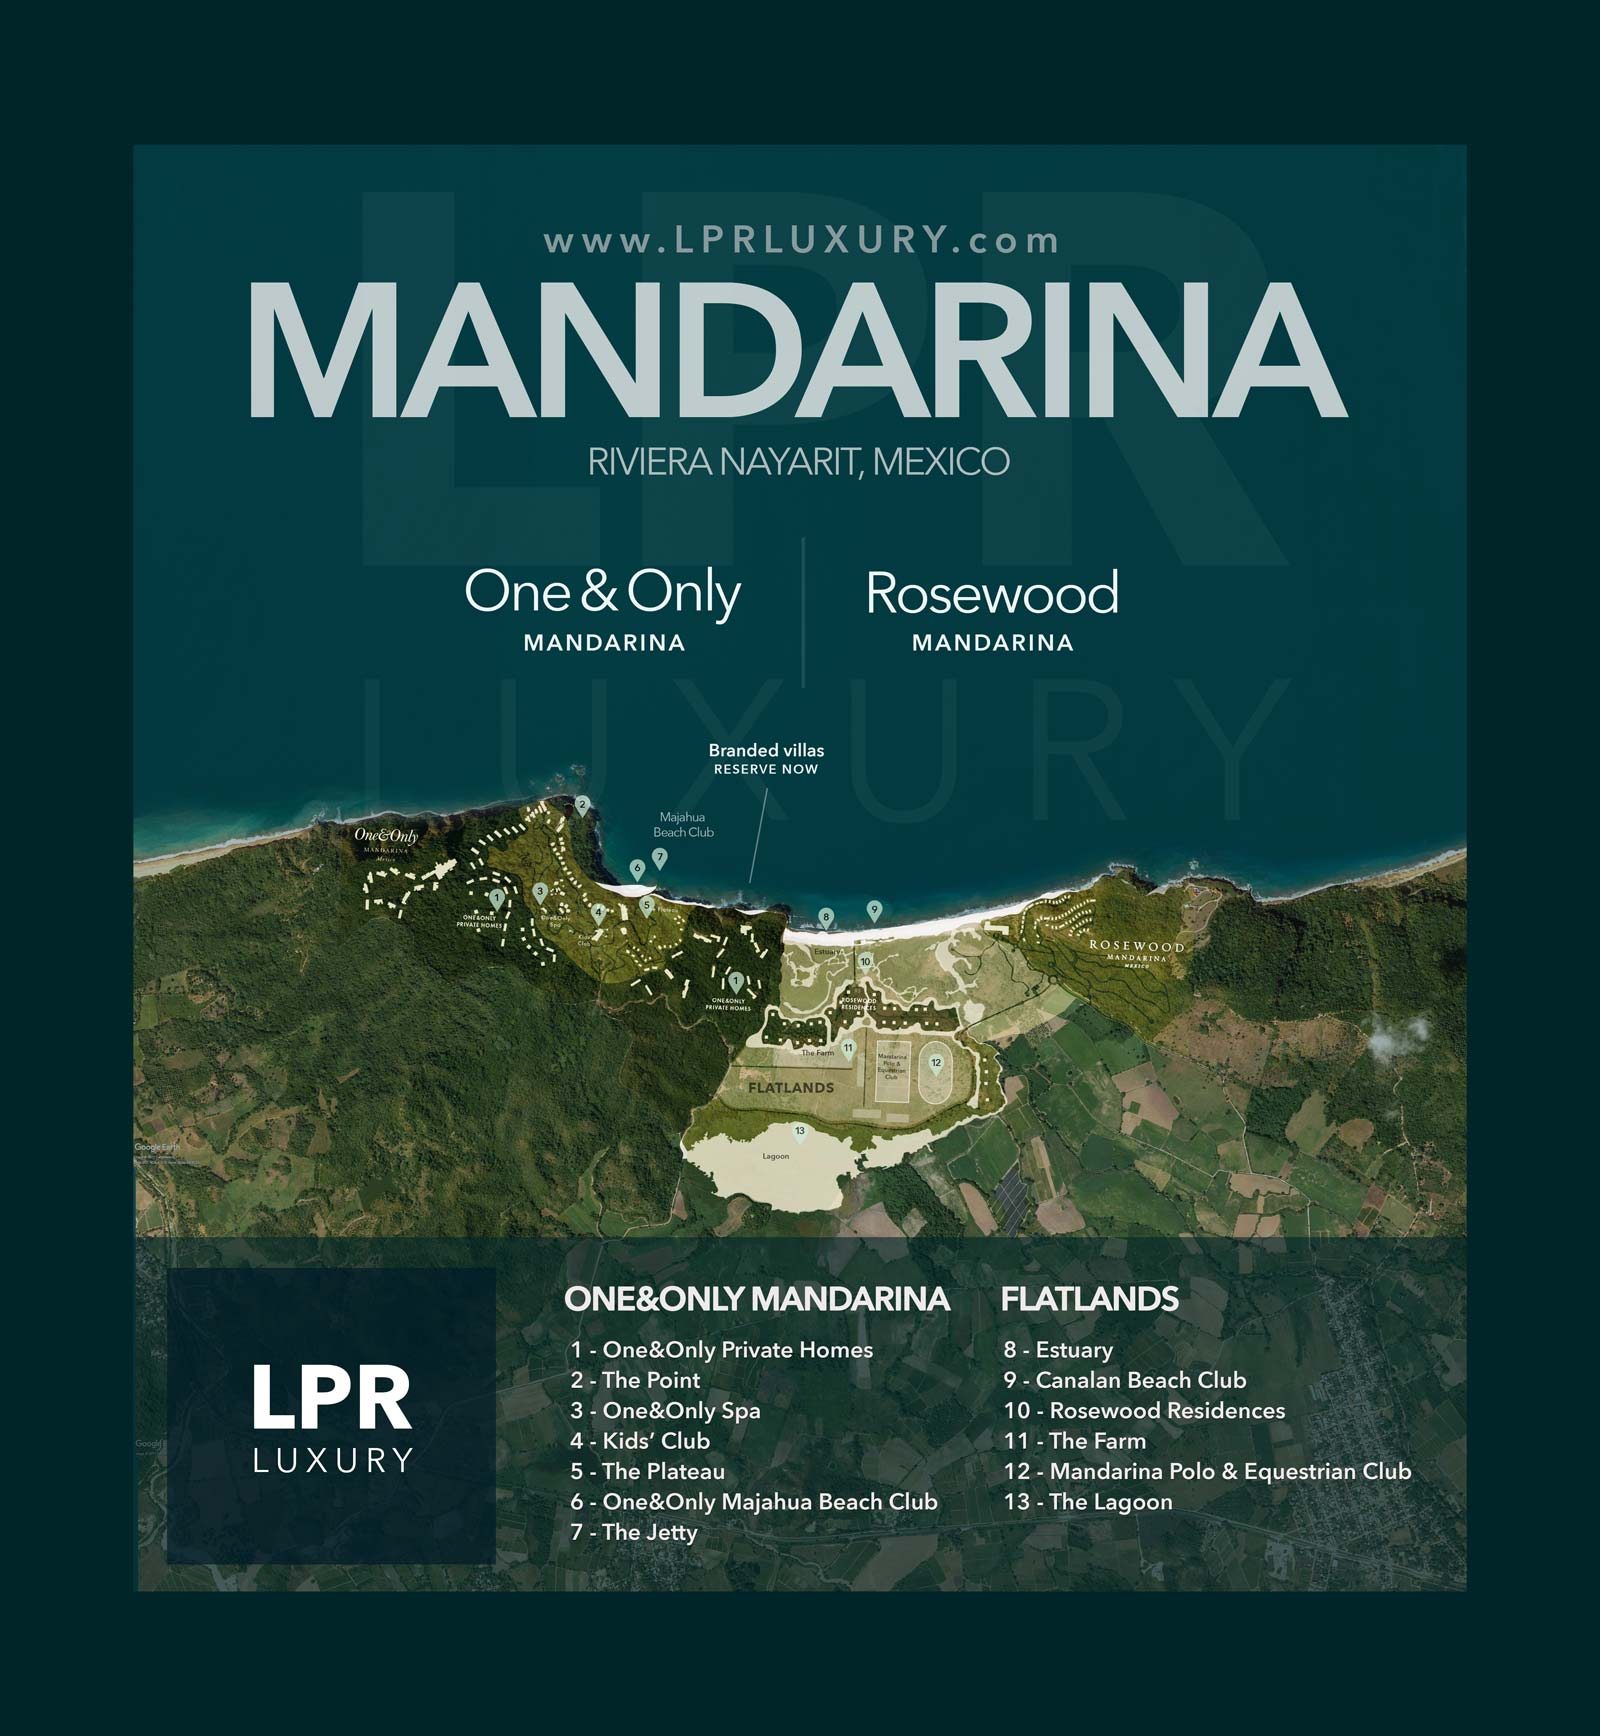 Master Plan Map of One&Only Private Homes - Mandarina, Riviera Nayarit - One & Only Resort real estate and vacation rentals